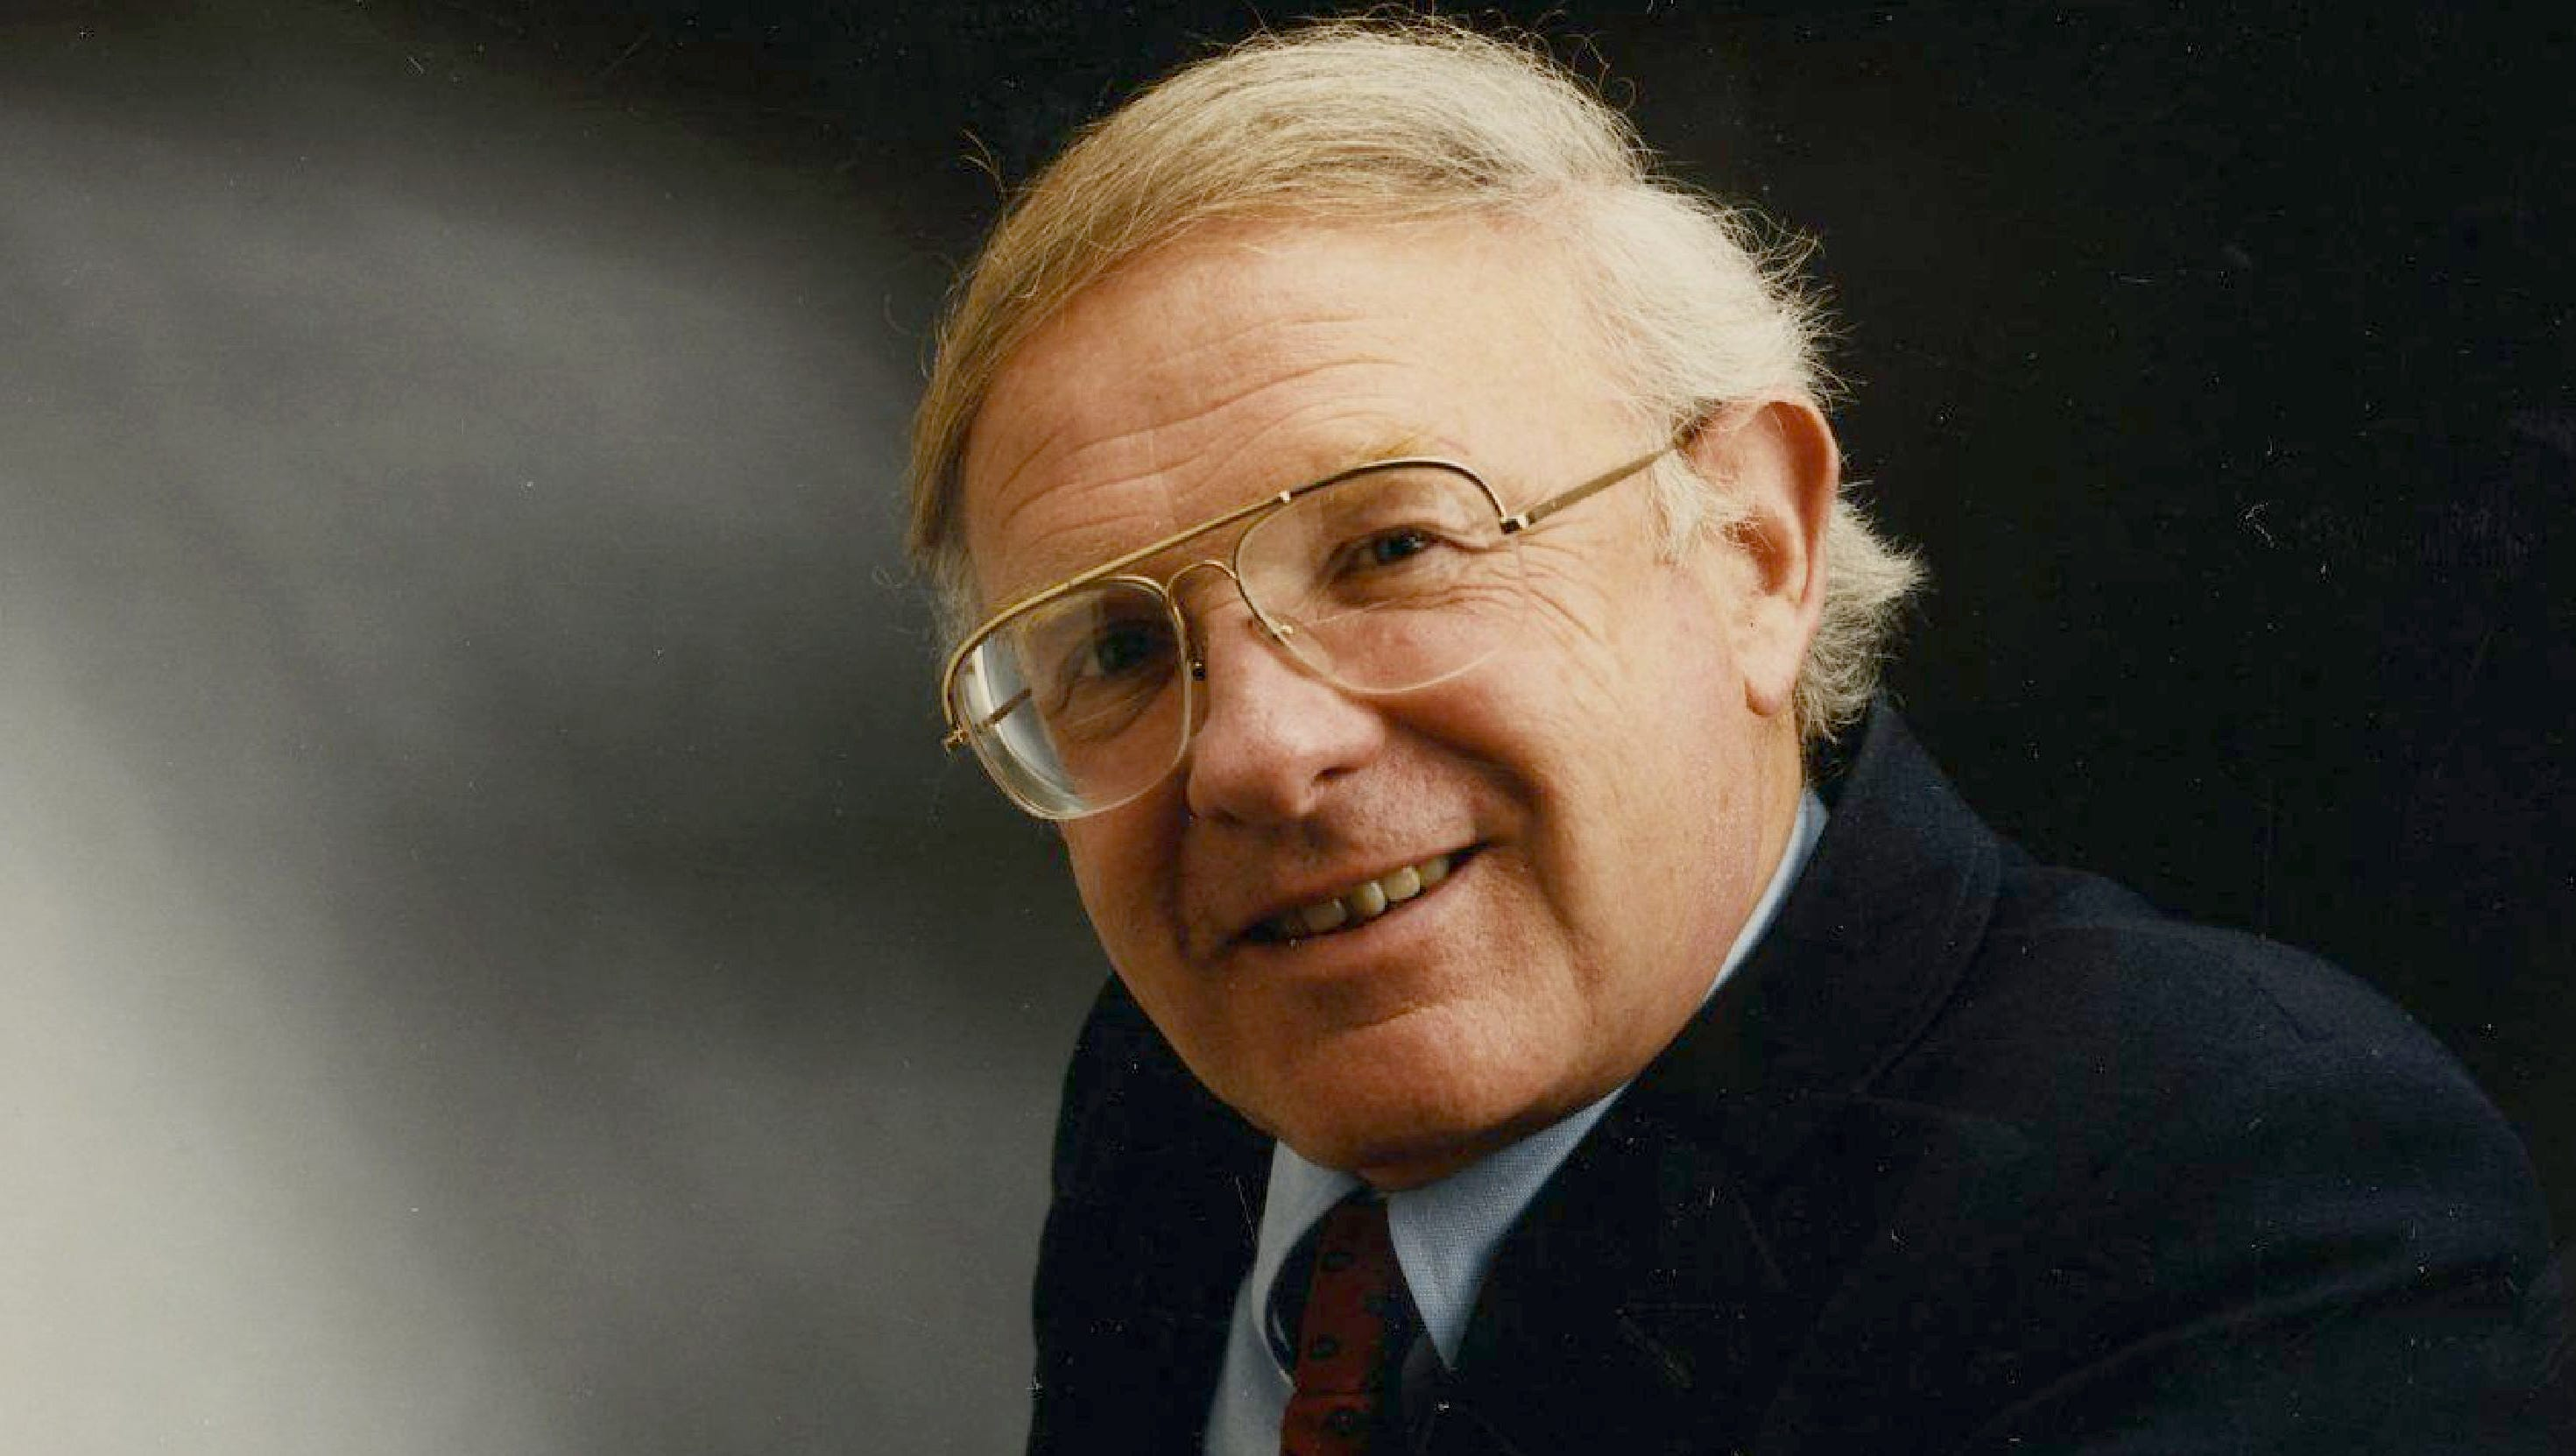 George Weeks dies, leaving a legacy of political insight on Michigan